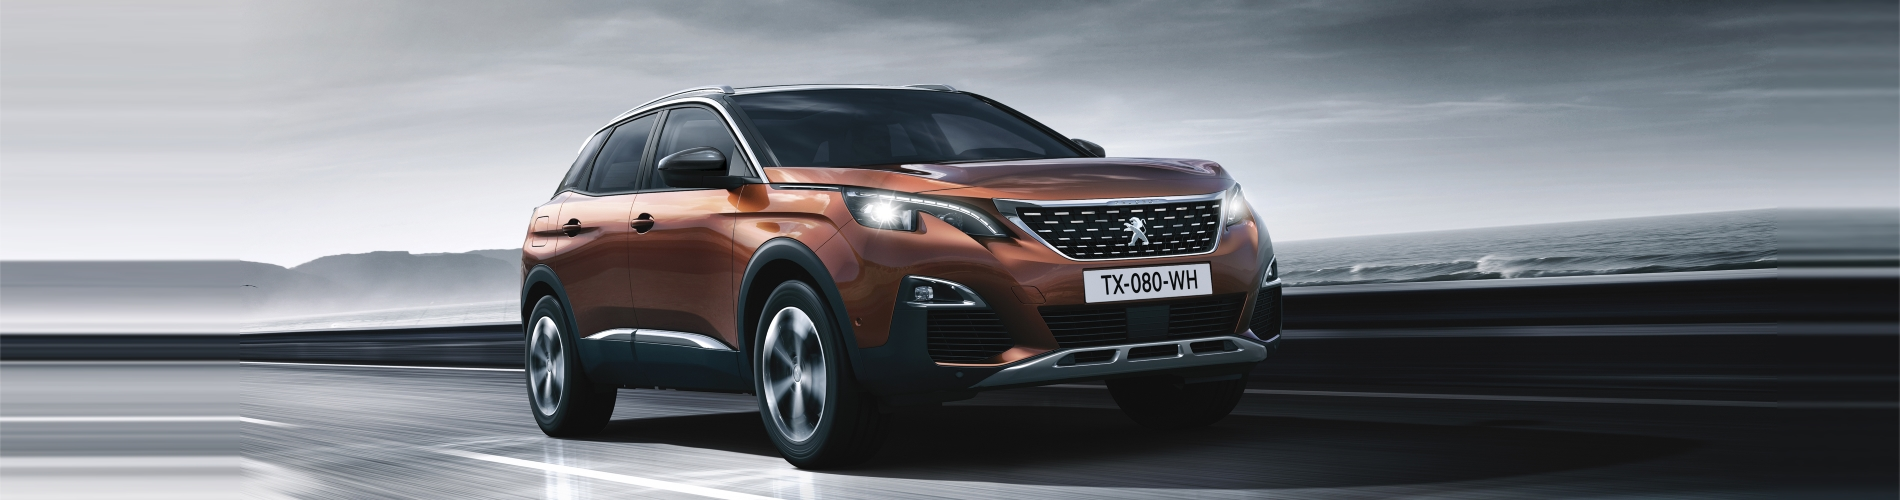 Peugeot 3008 SUV Wycliffe Peugeot Rugby